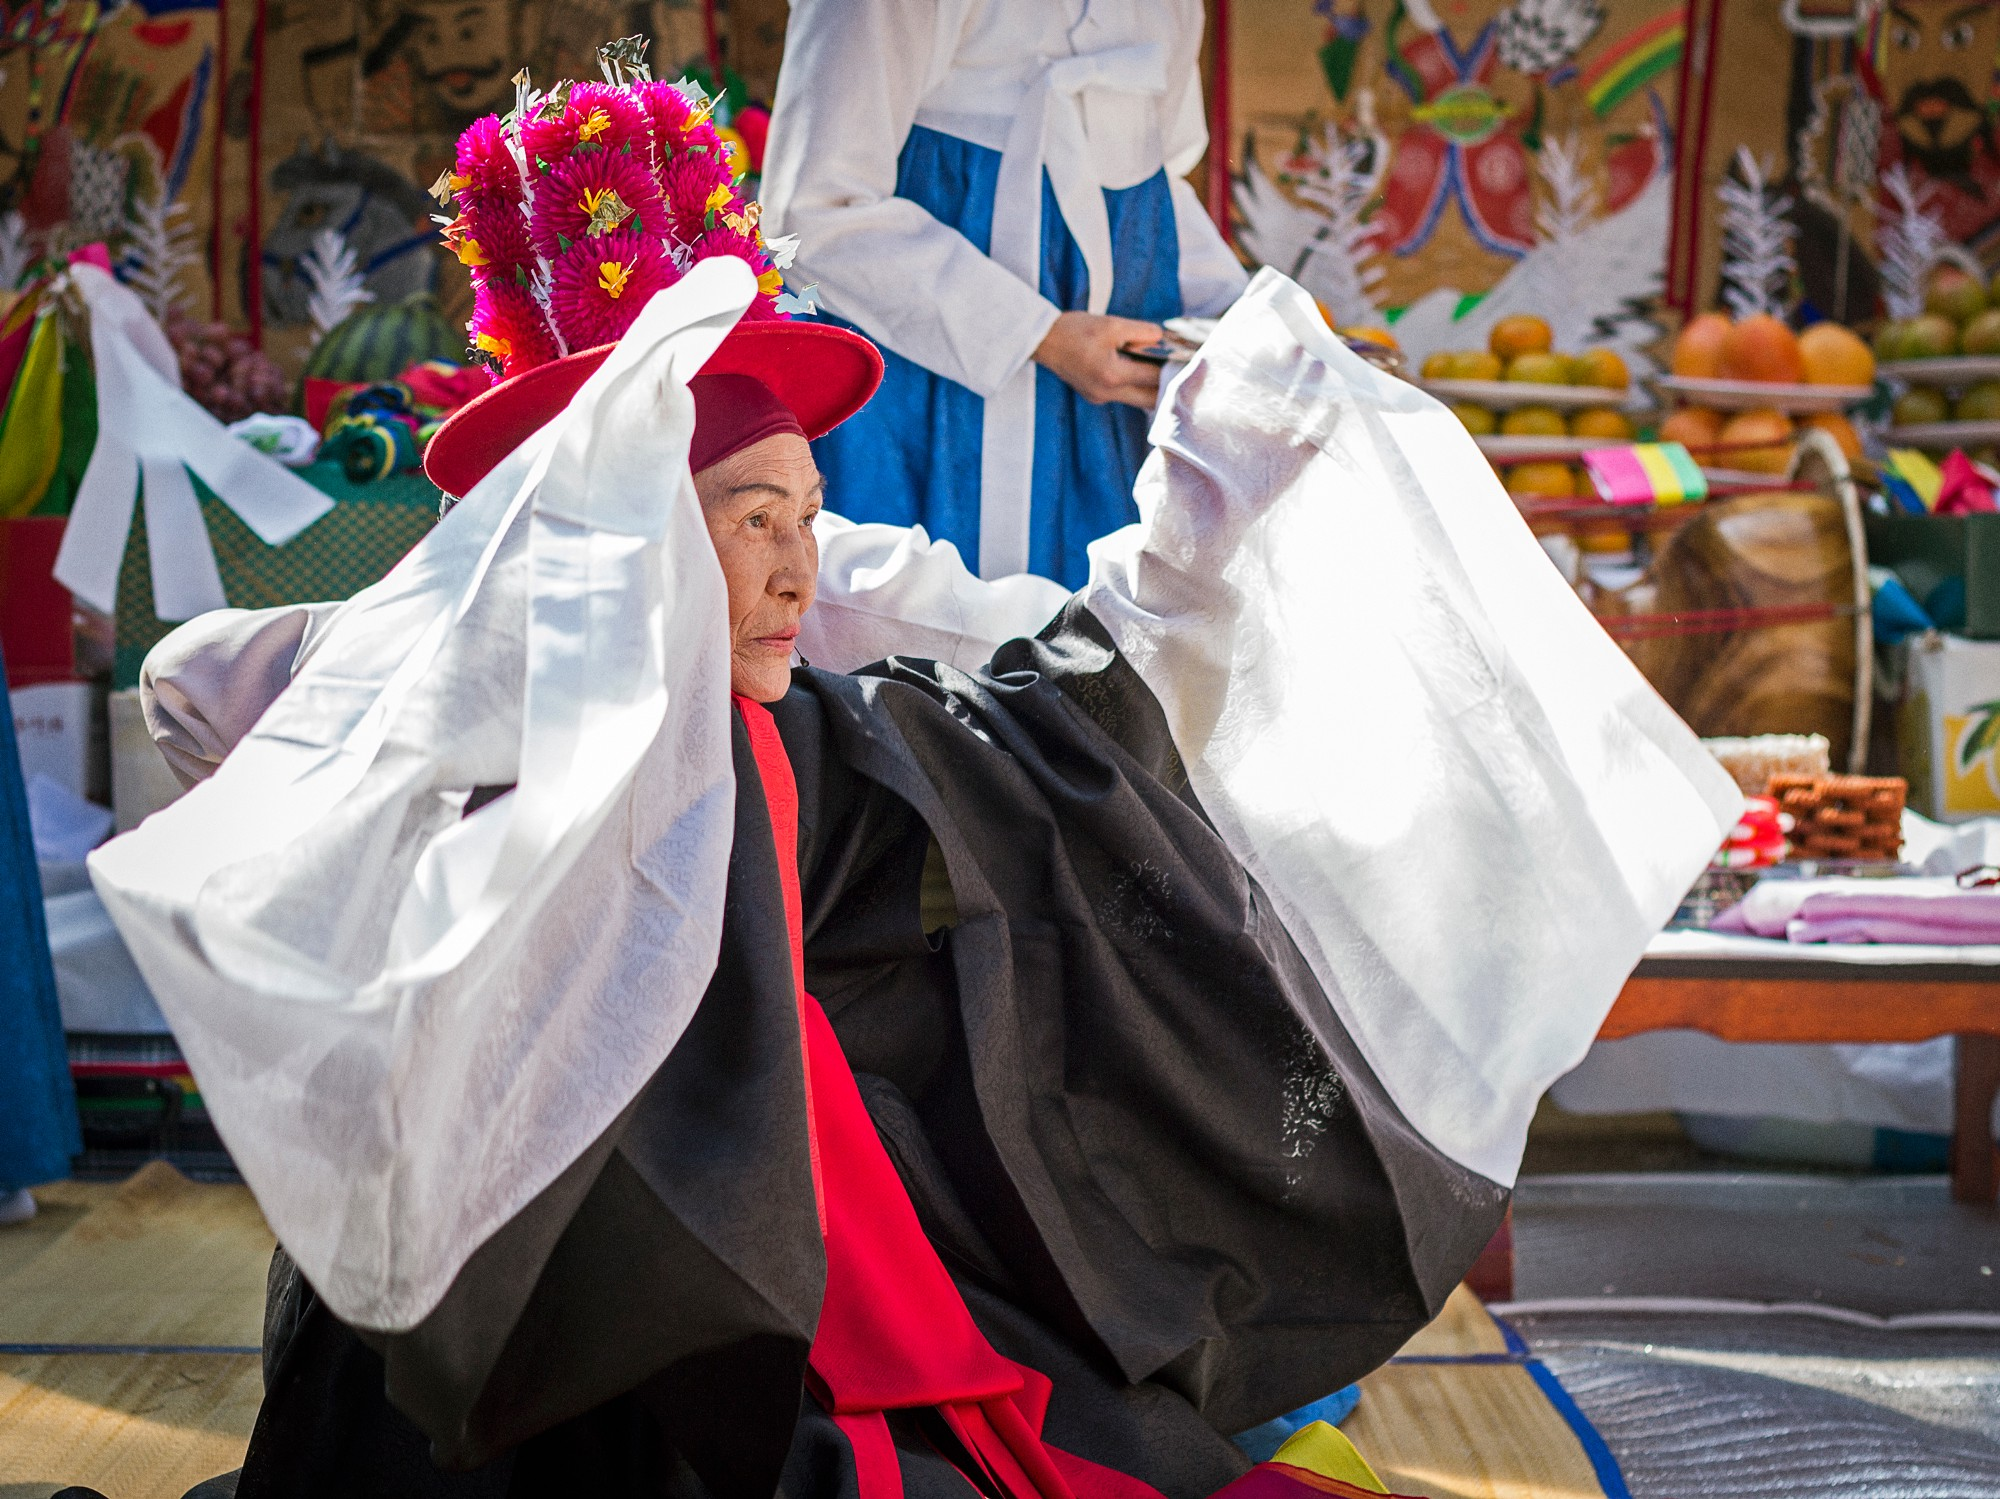 In 21st Century Korea Shamanism Is Not Only Thriving But Evolving